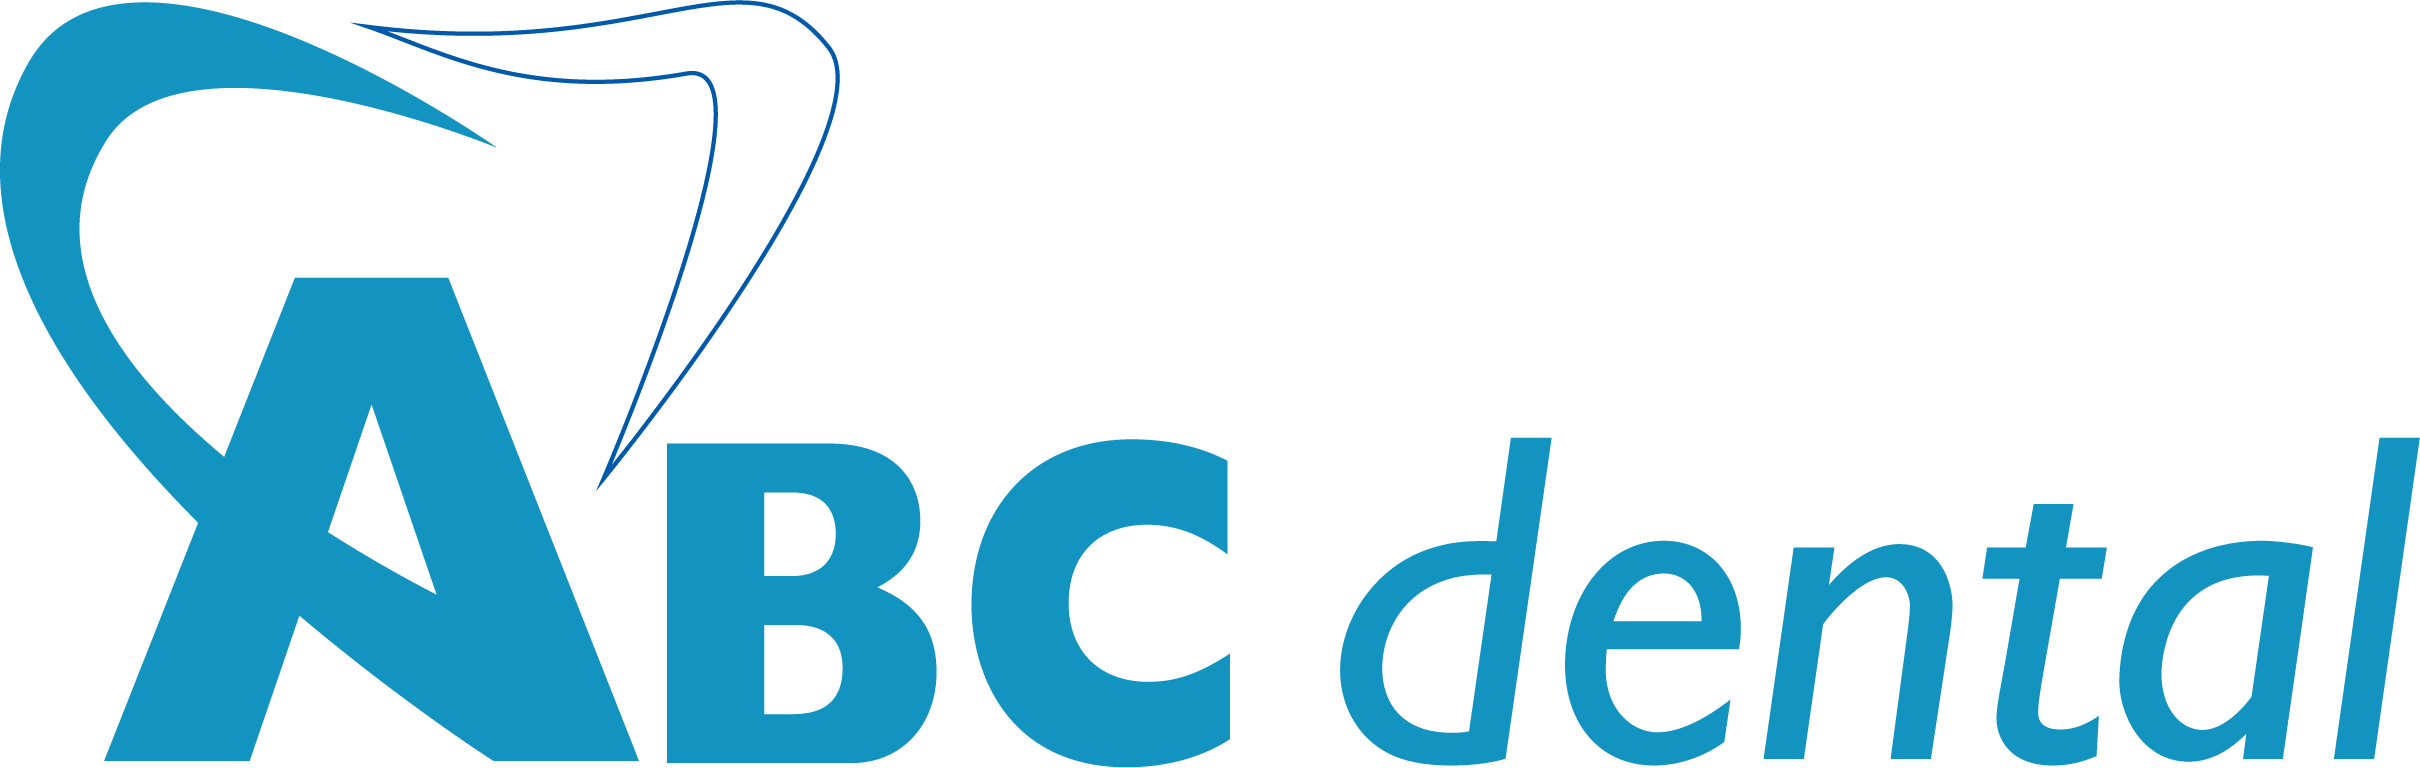 ABC Dental